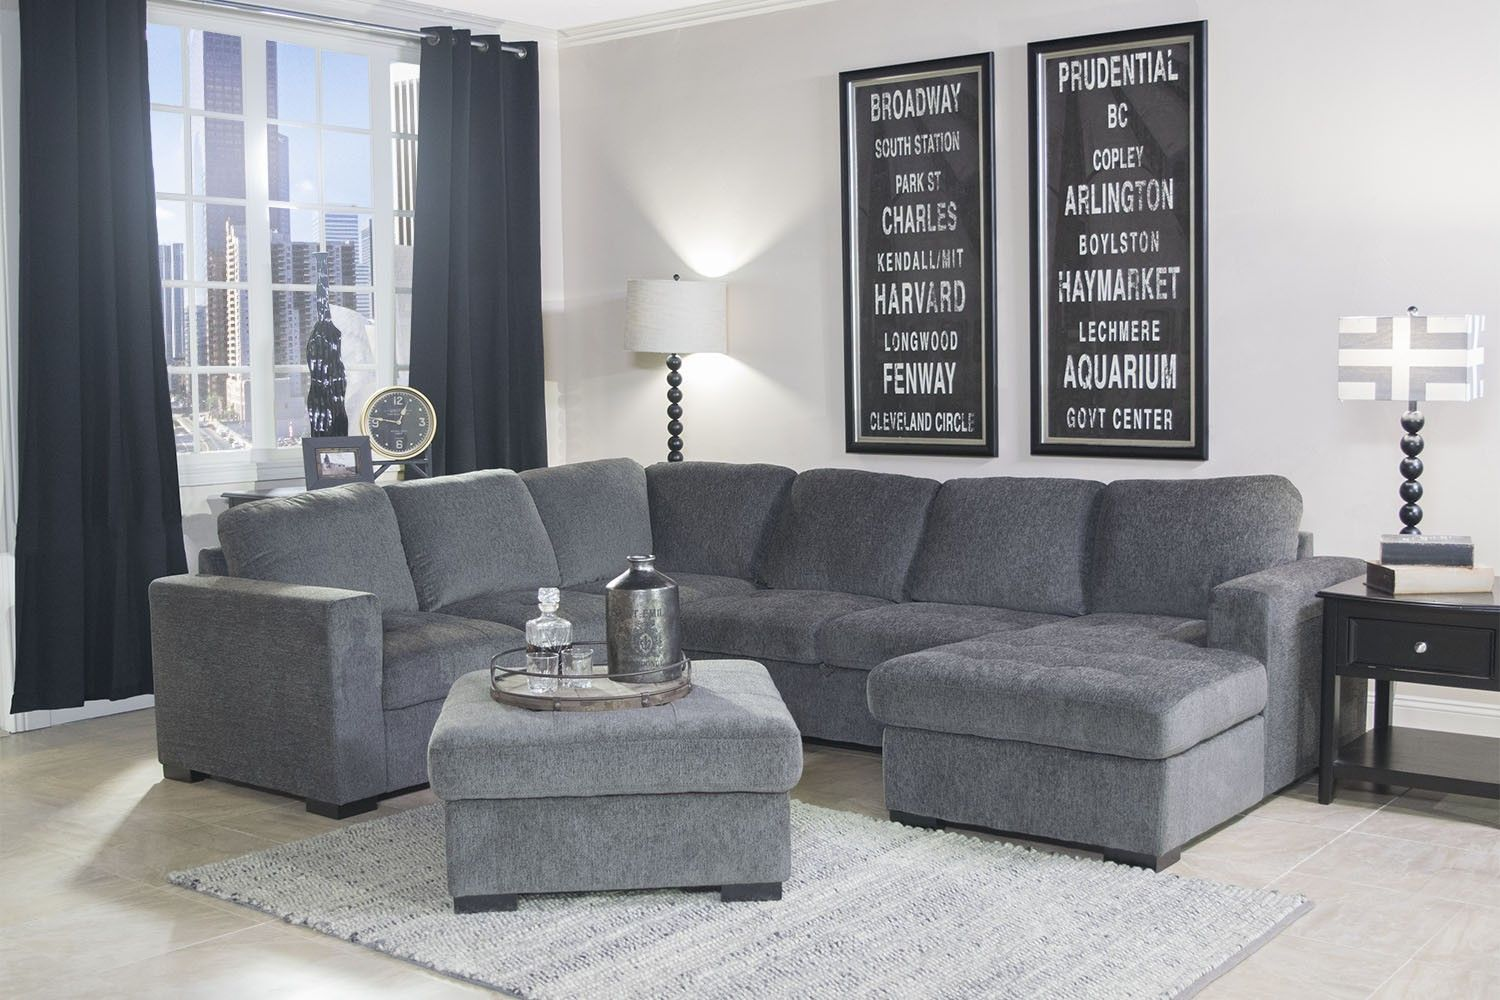 Mor Furniture For Less The Claire 3 Piece Right Facing Chaise Sectional